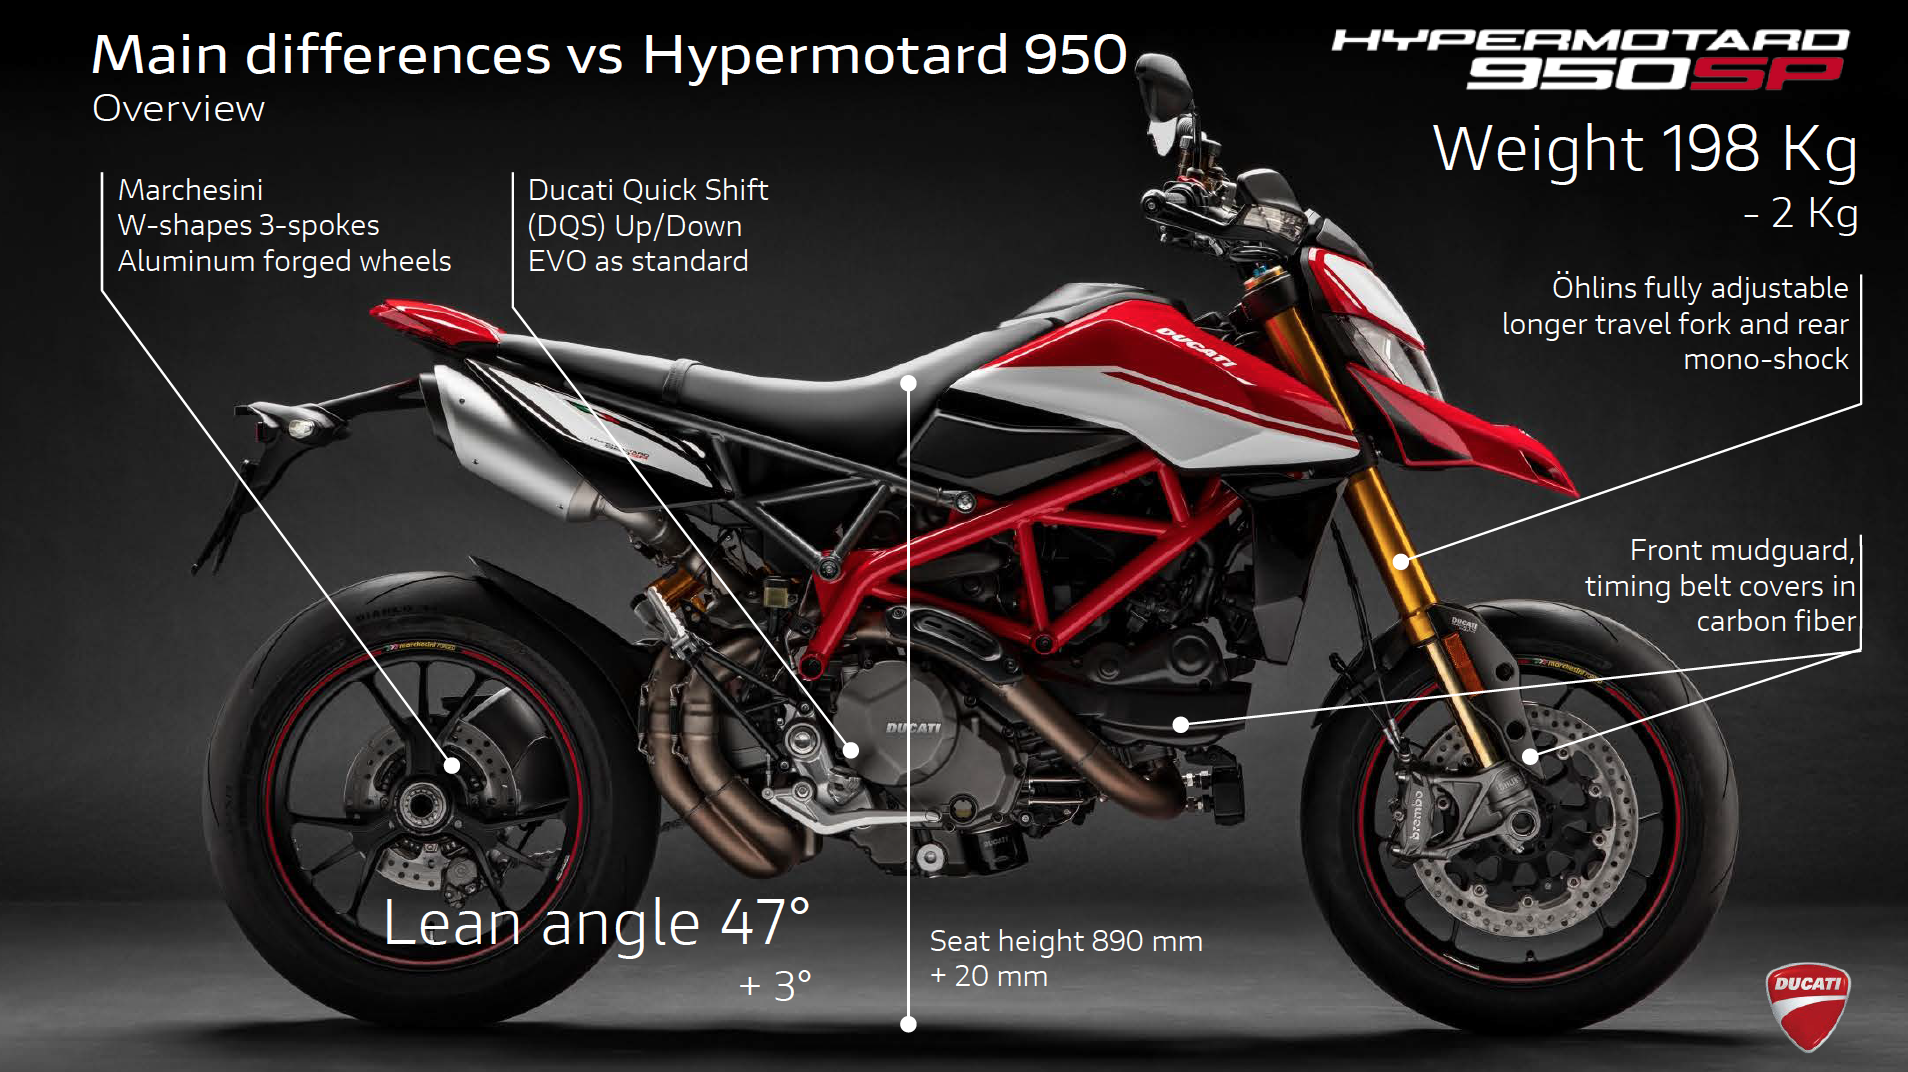 012919 2019 Ducati Hypermotard 950 Review Differences